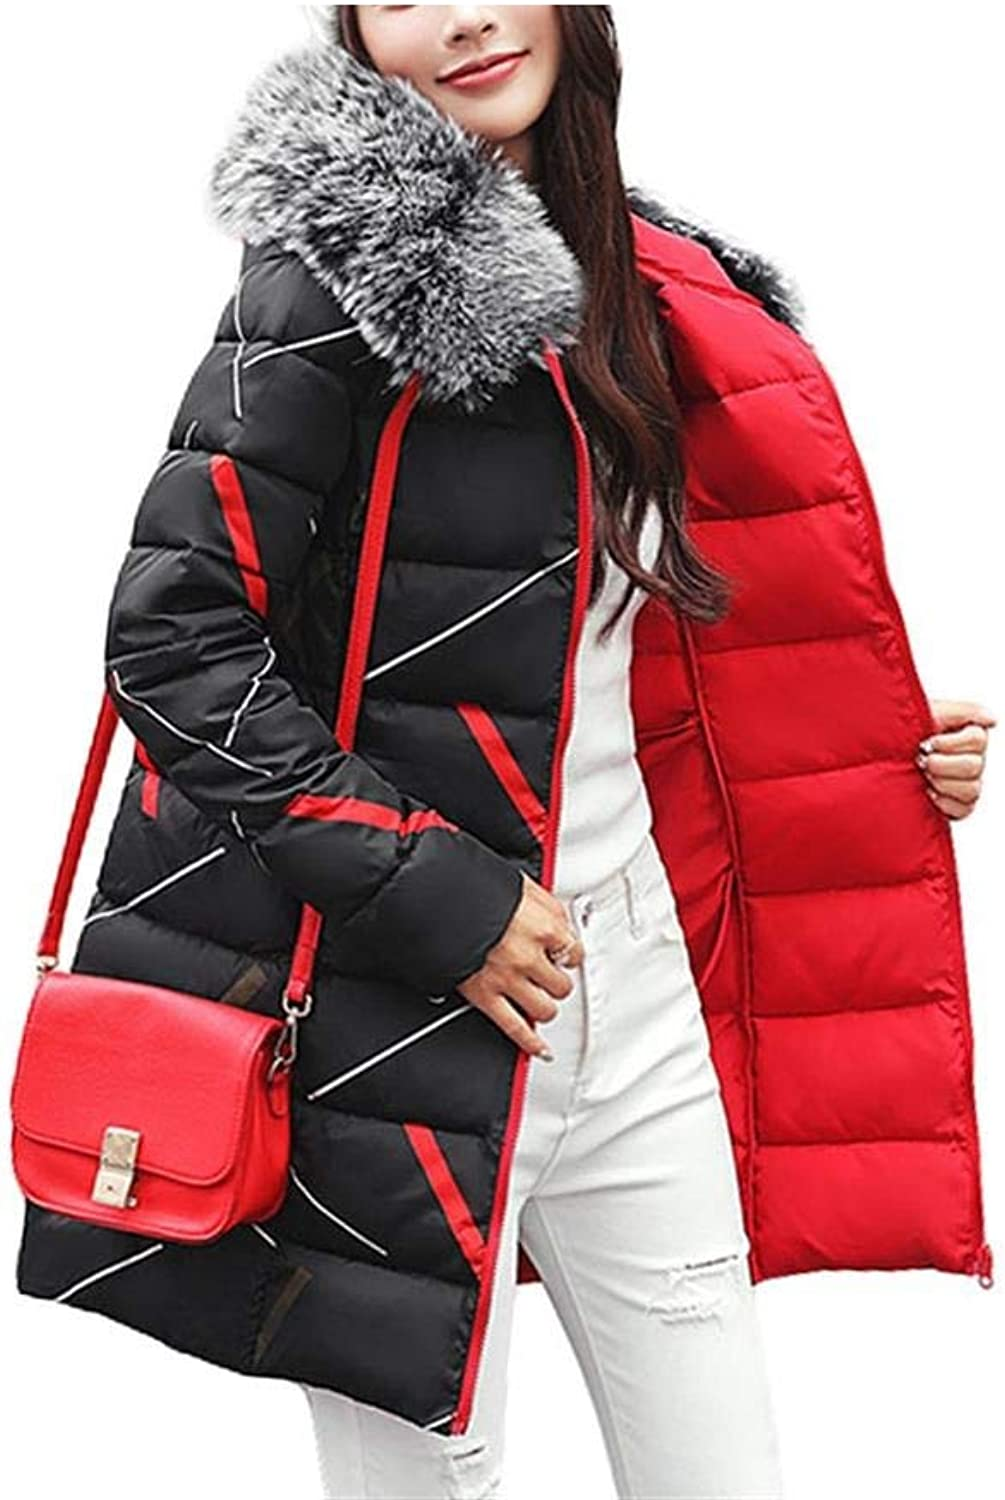 Dotoo Winter Women's Cotton Thick Long Fashion Hooded Slim Red Lined Warm Jacket